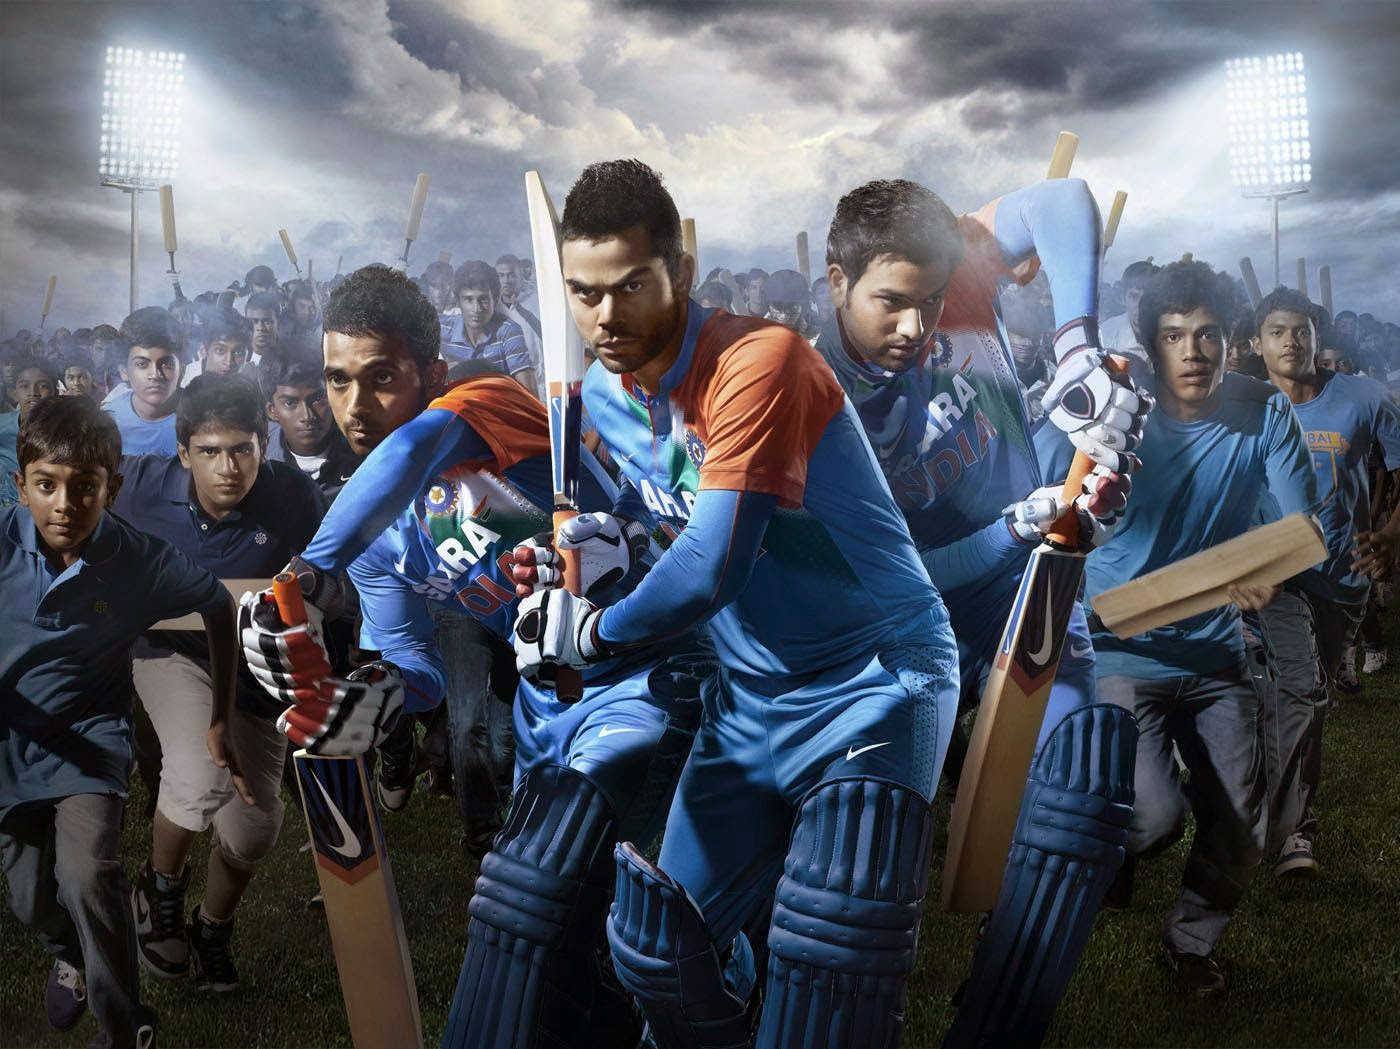 Indian Cricket Hd Wallpapers: Download Indian Cricket Team Wallpapers Free Download Gallery